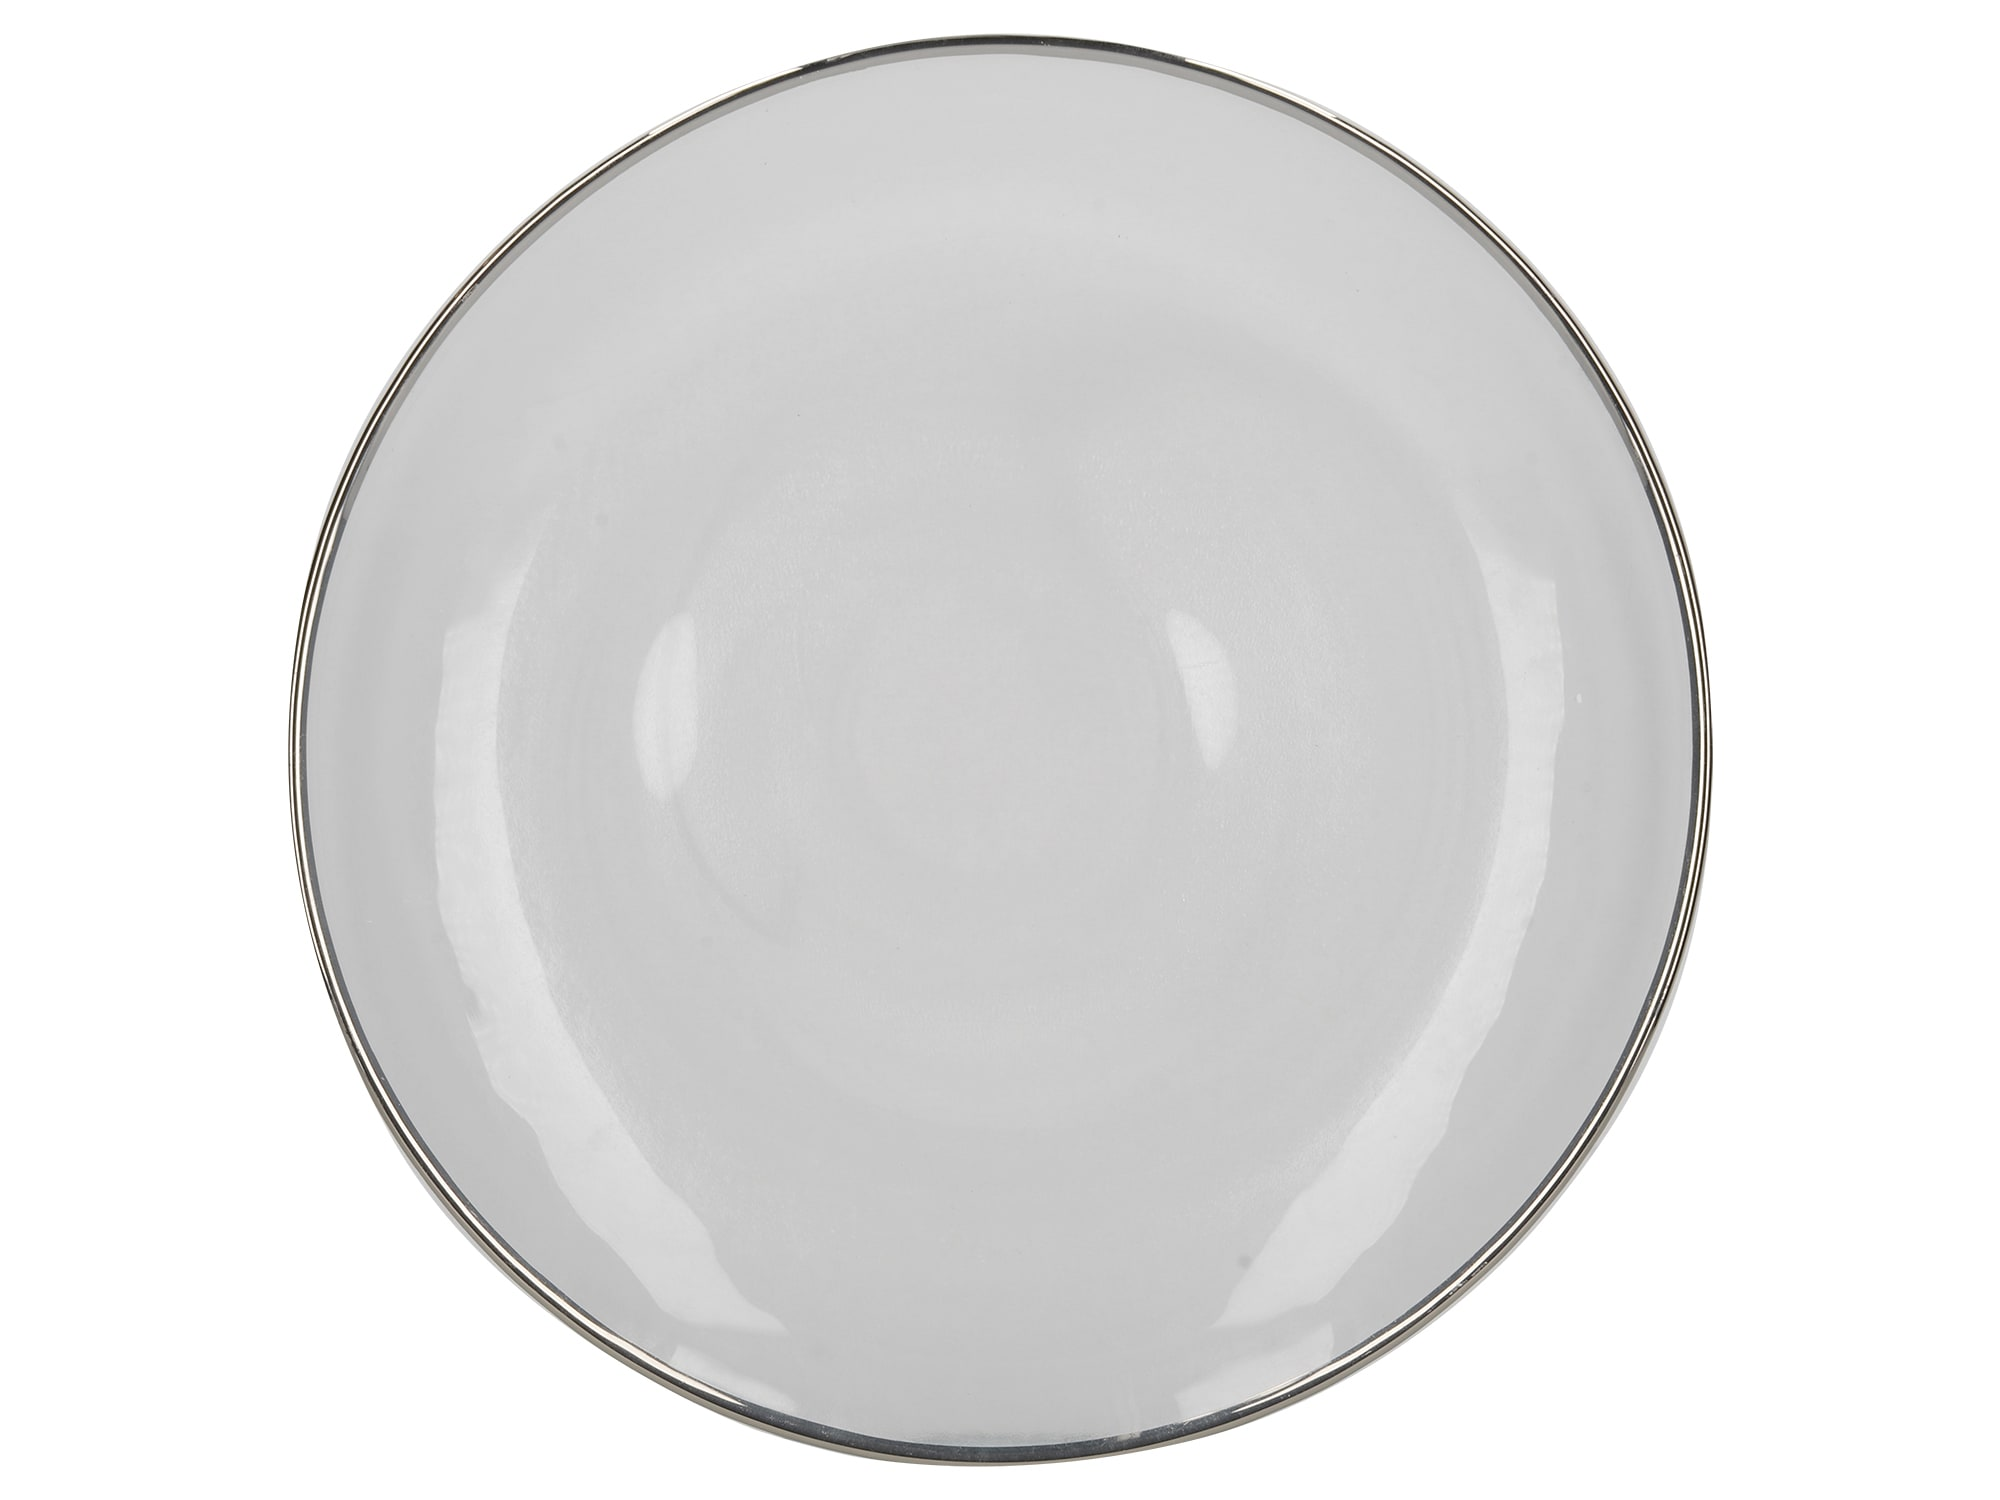 Mikasa Silver Rim Charger Plate